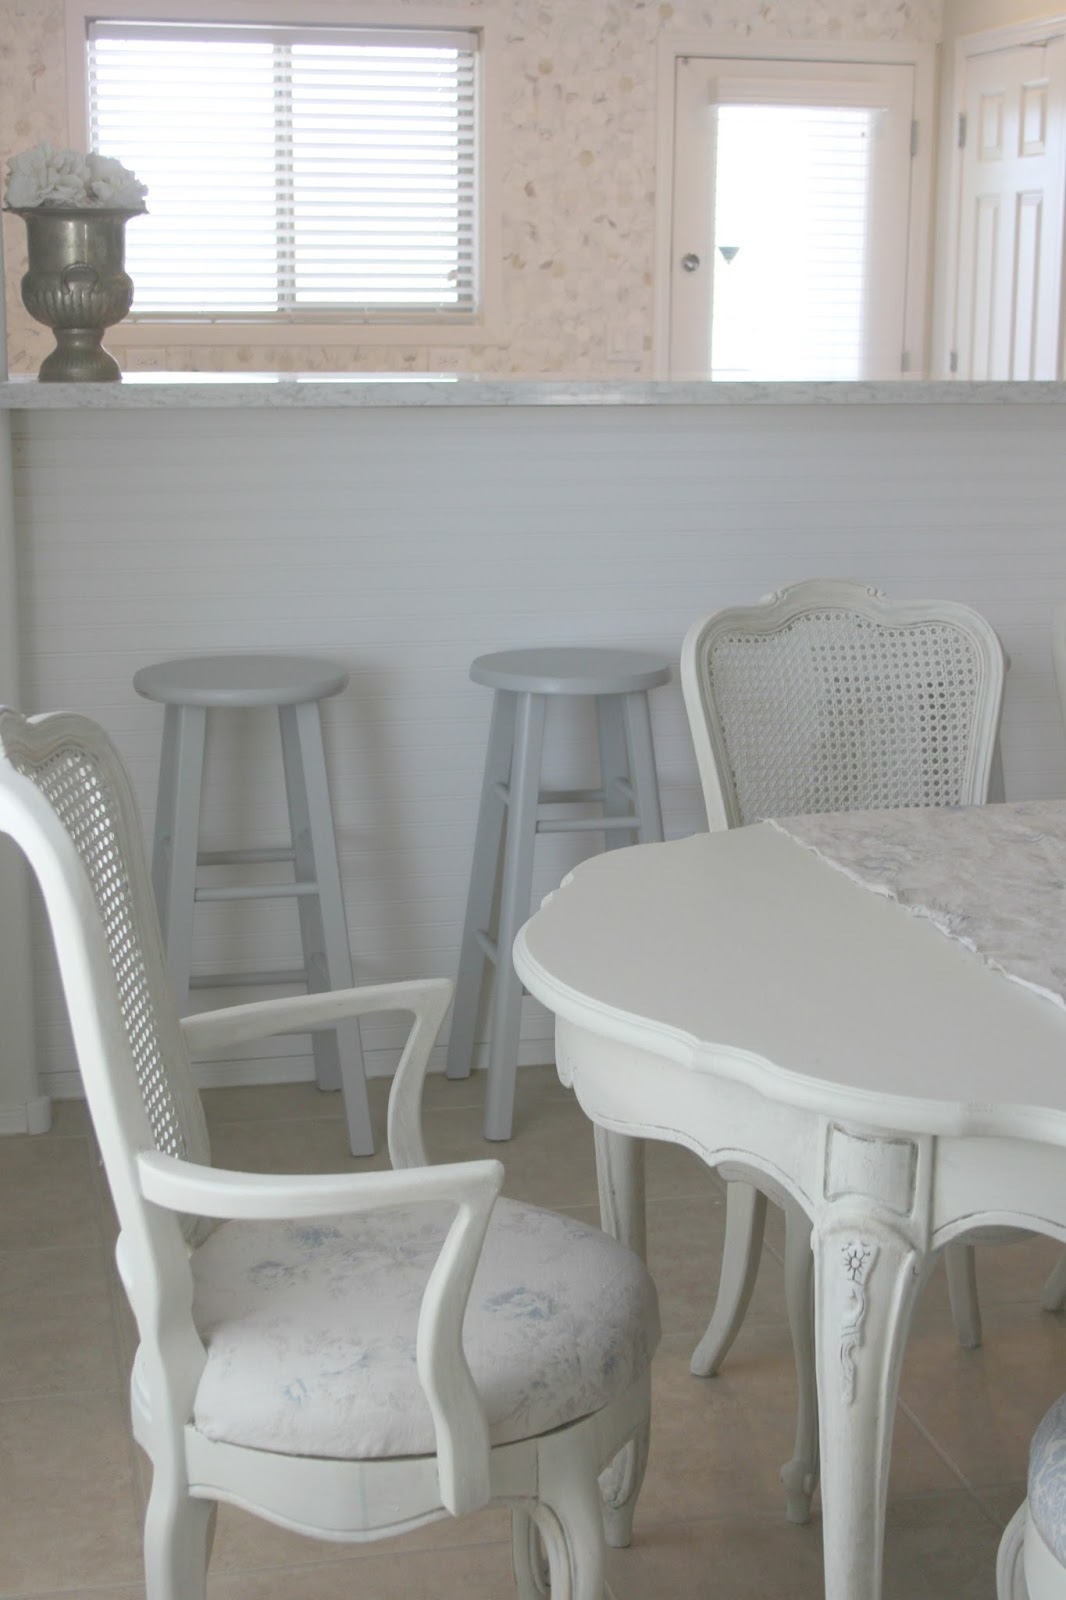 Shabby chic white cane back dining chair with linen fabric seat by Hello Lovely Studio